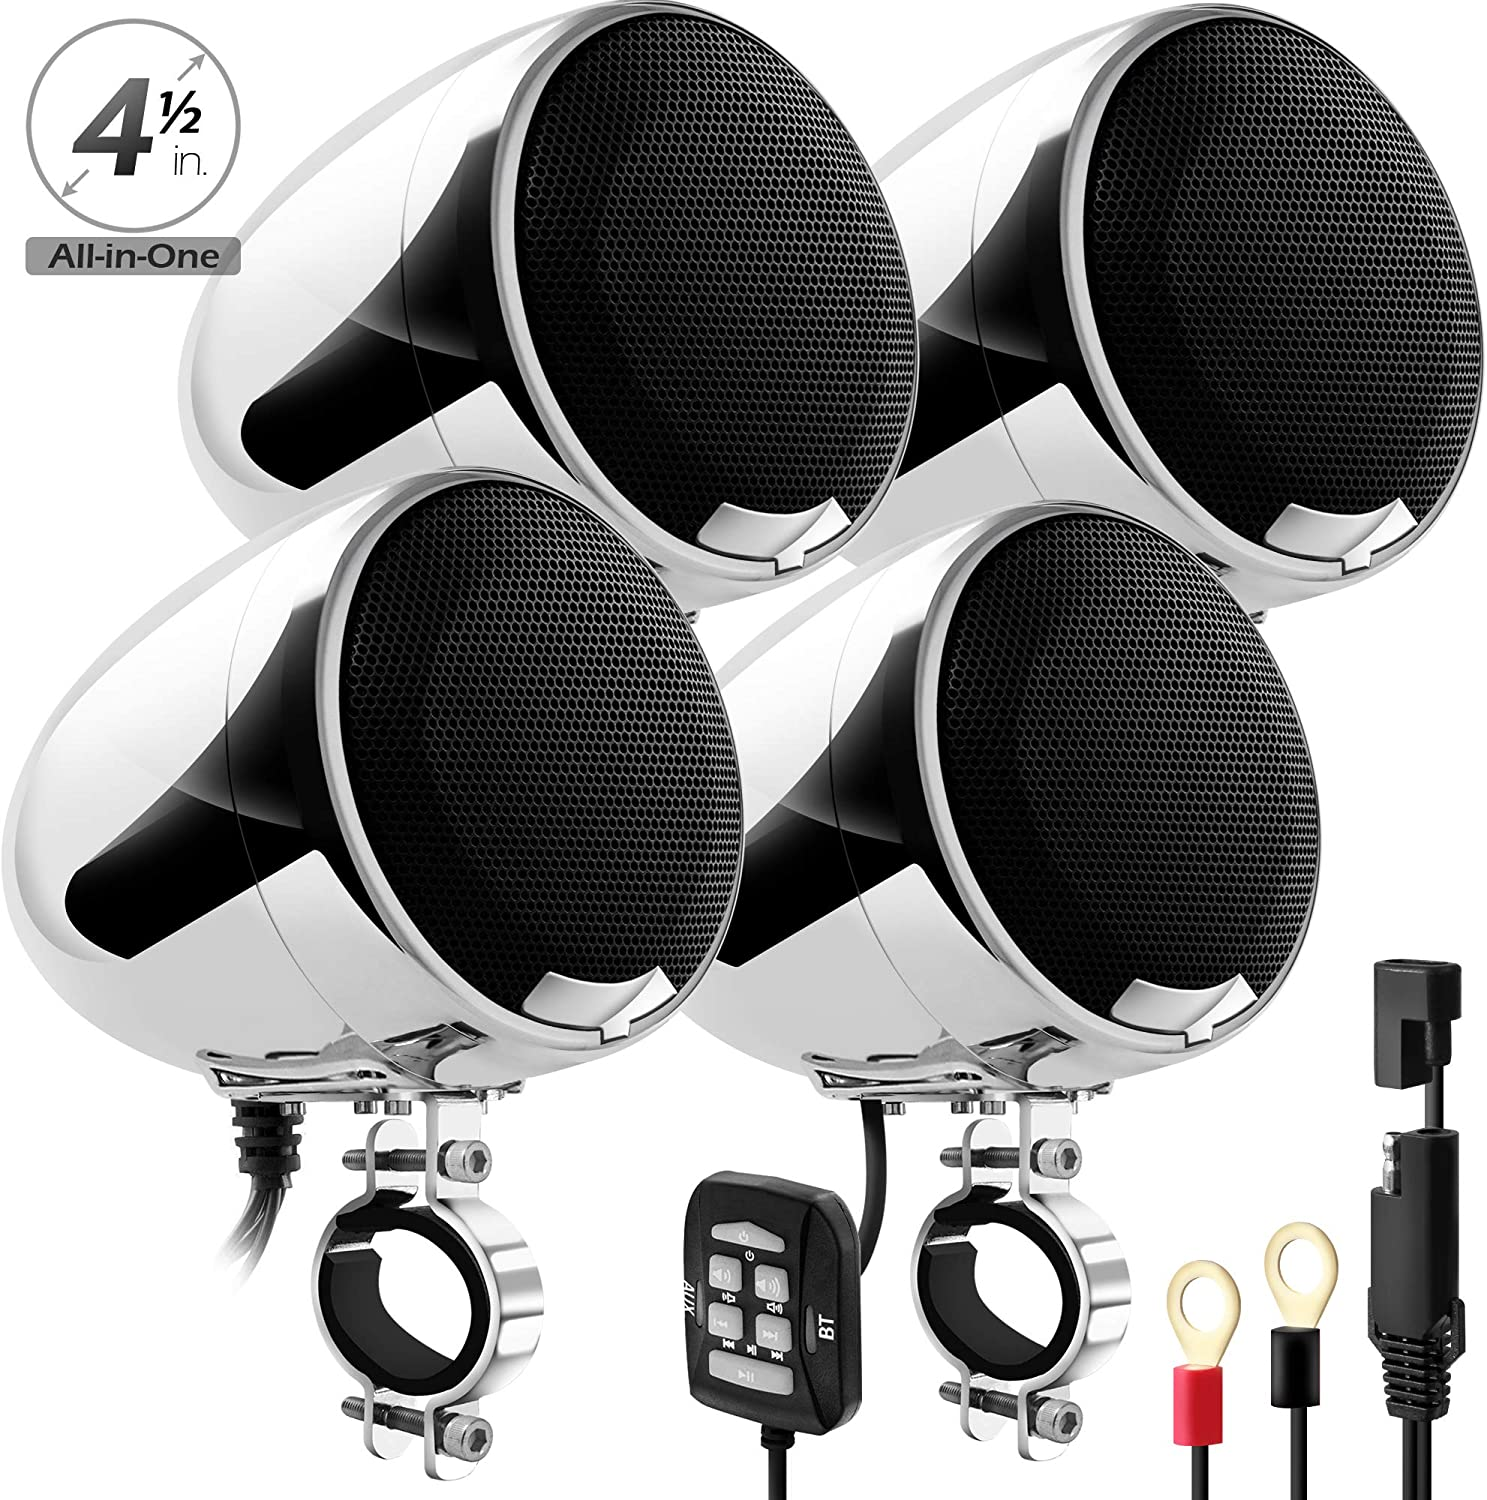 """GoHawk AN4-QX All-in-One 1200W Built-in Amplifier 4.5"""" Waterproof Bluetooth Motorcycle Stereo 4 Speakers Audio Amp System AUX for 1-1.5"""" Handlebar Harley CVO Touring Cruiser Custom Can-Am ATV"""